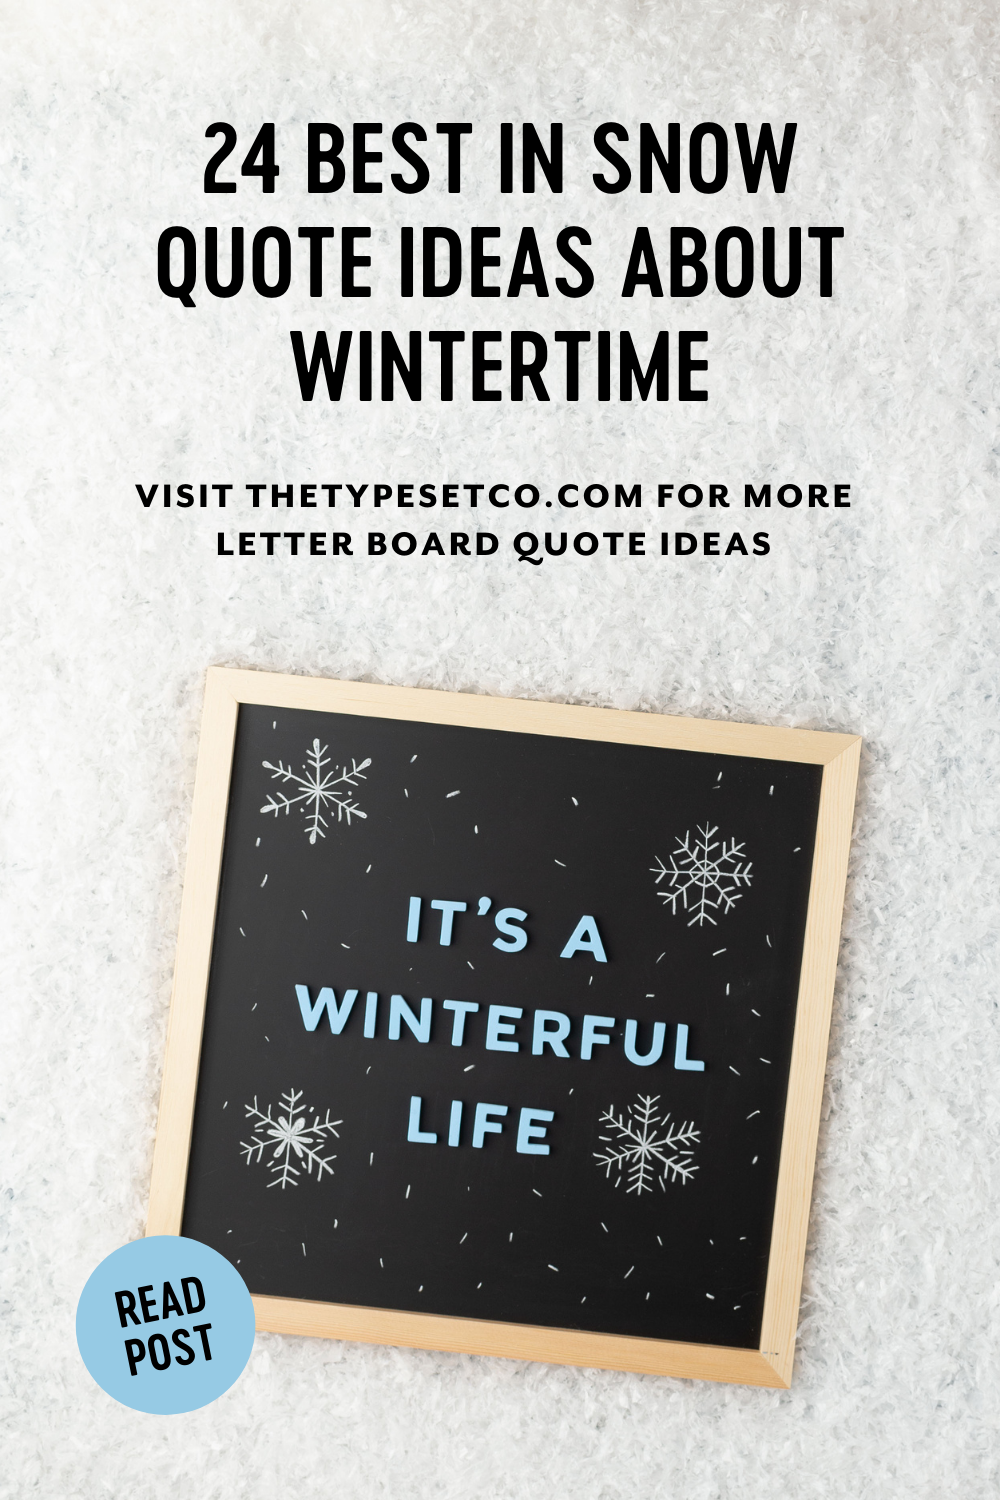 24 Best in Snow Letterboard Quote Ideas About Wintertime